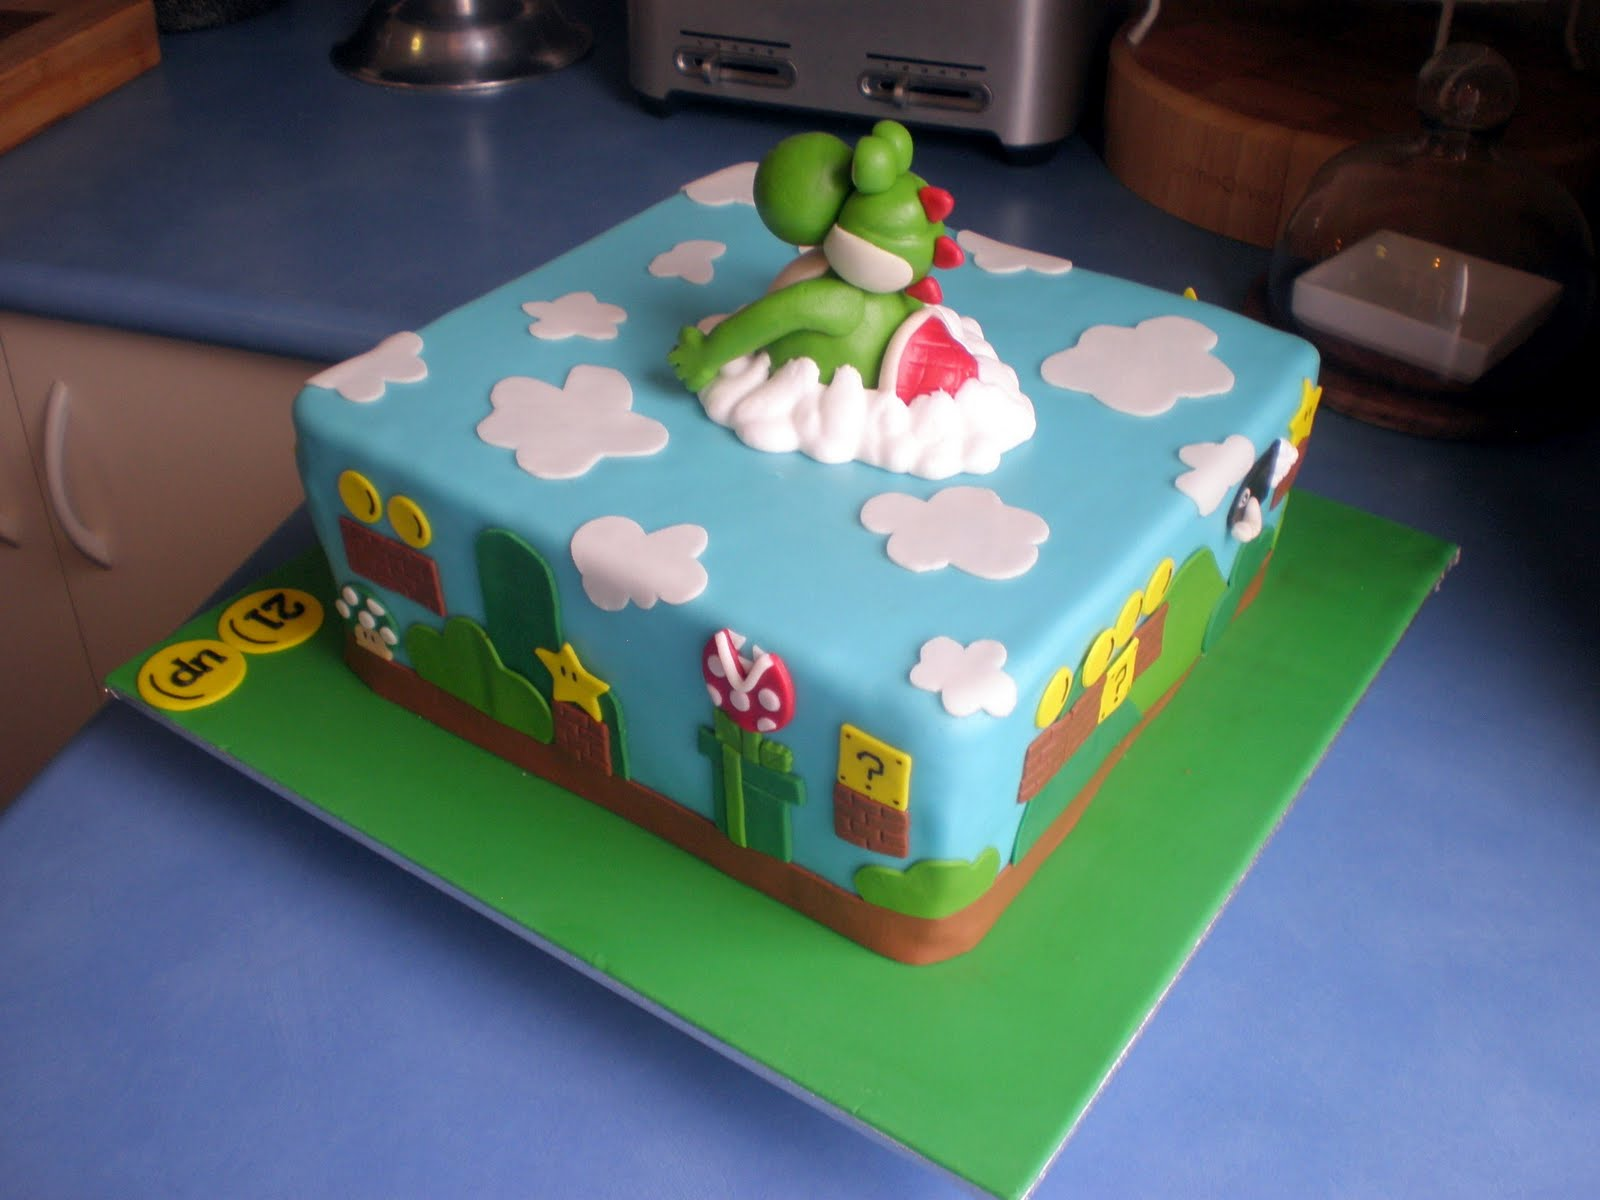 Bowsers Blog 15 of the Best Super Mario Cakes EVER